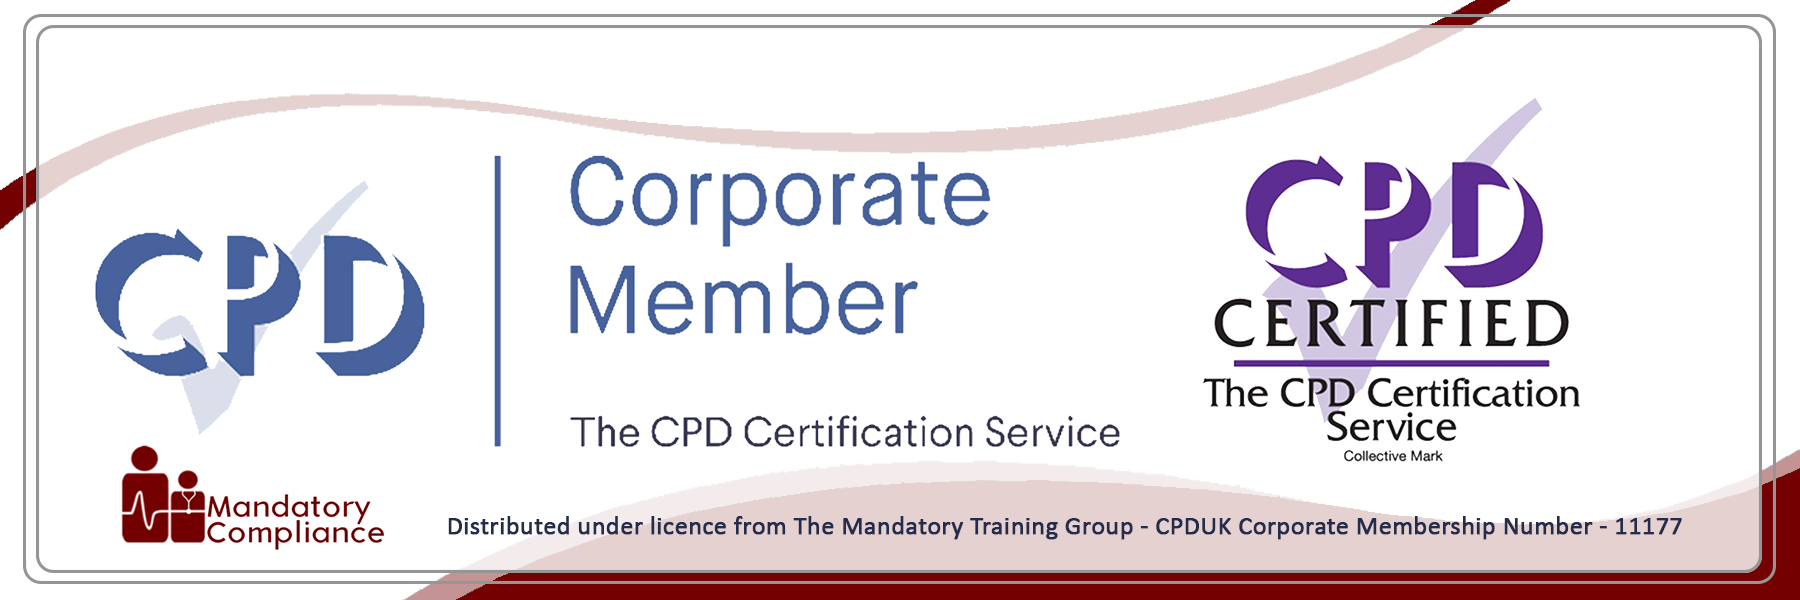 Employee Recruitment Training - Online Training Course - CPD Accredited - Mandatory Compliance UK -